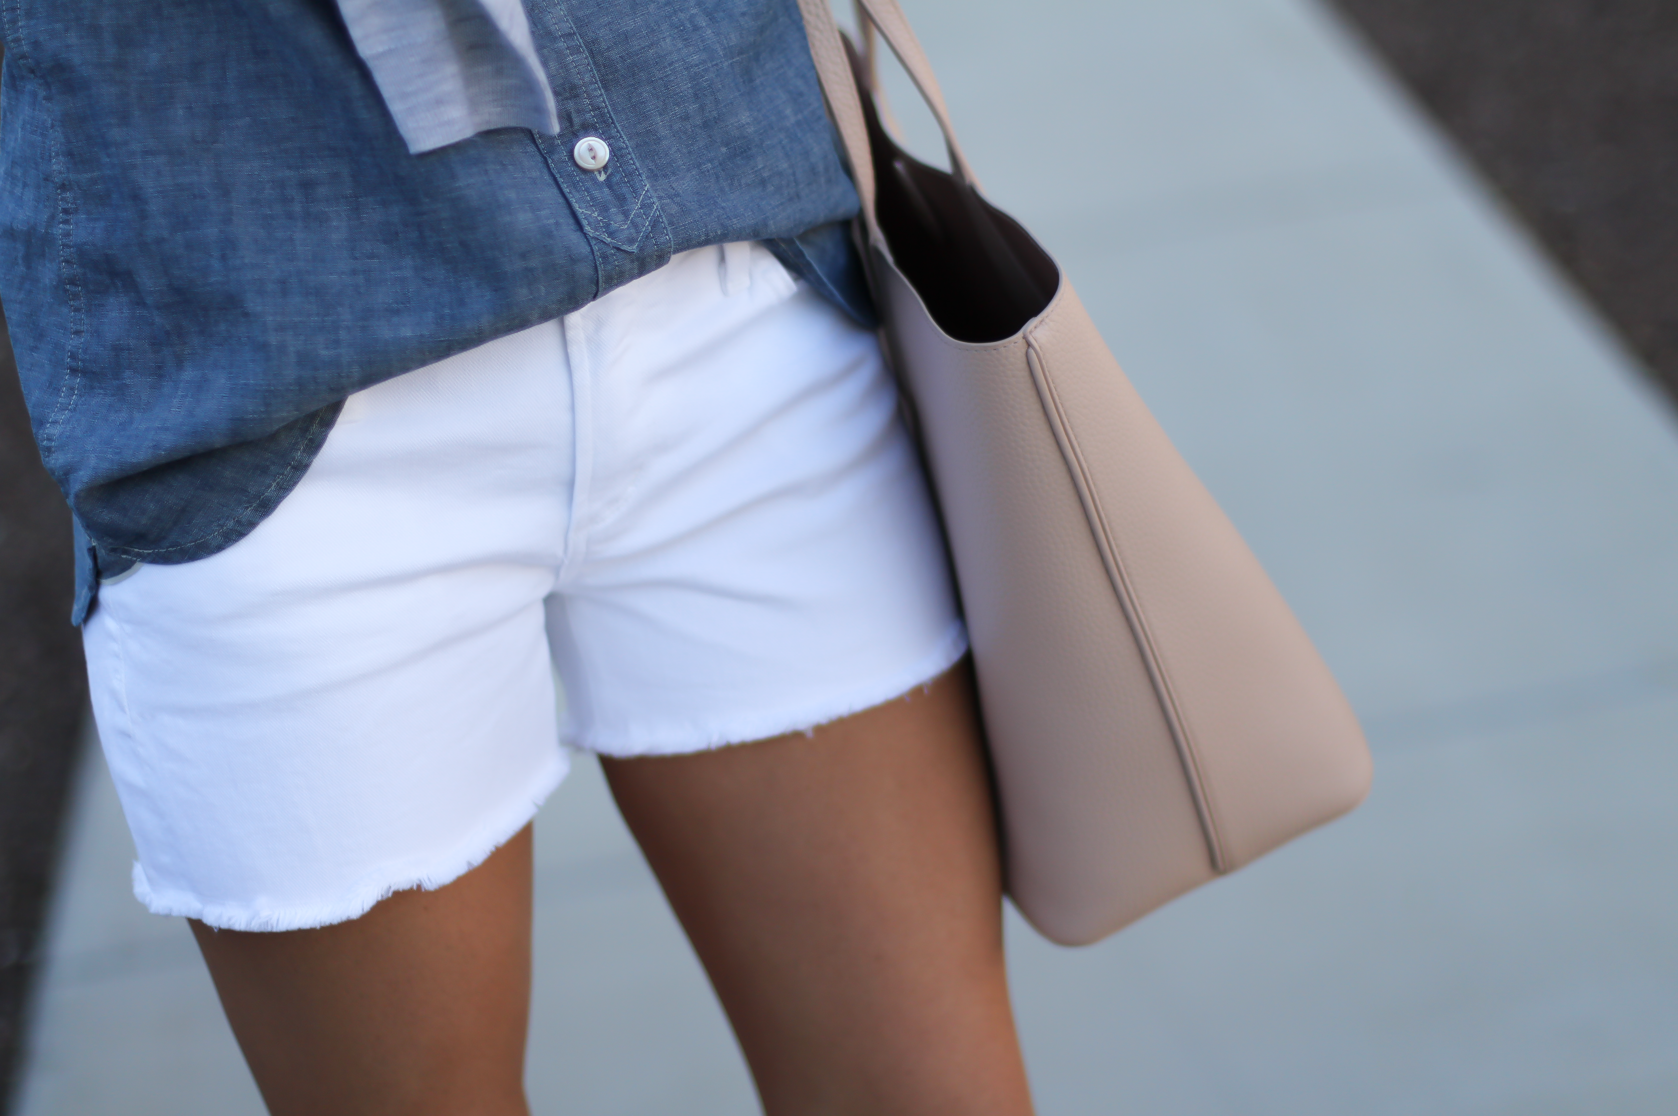 Chambray Shirt, White Cutoff Shorts, Beige Espadrille Wedges, Beige Tote, Grey Cashmere Cardigan, J.Crew, Citizens of Humanity, Vince, Tory Burch 20